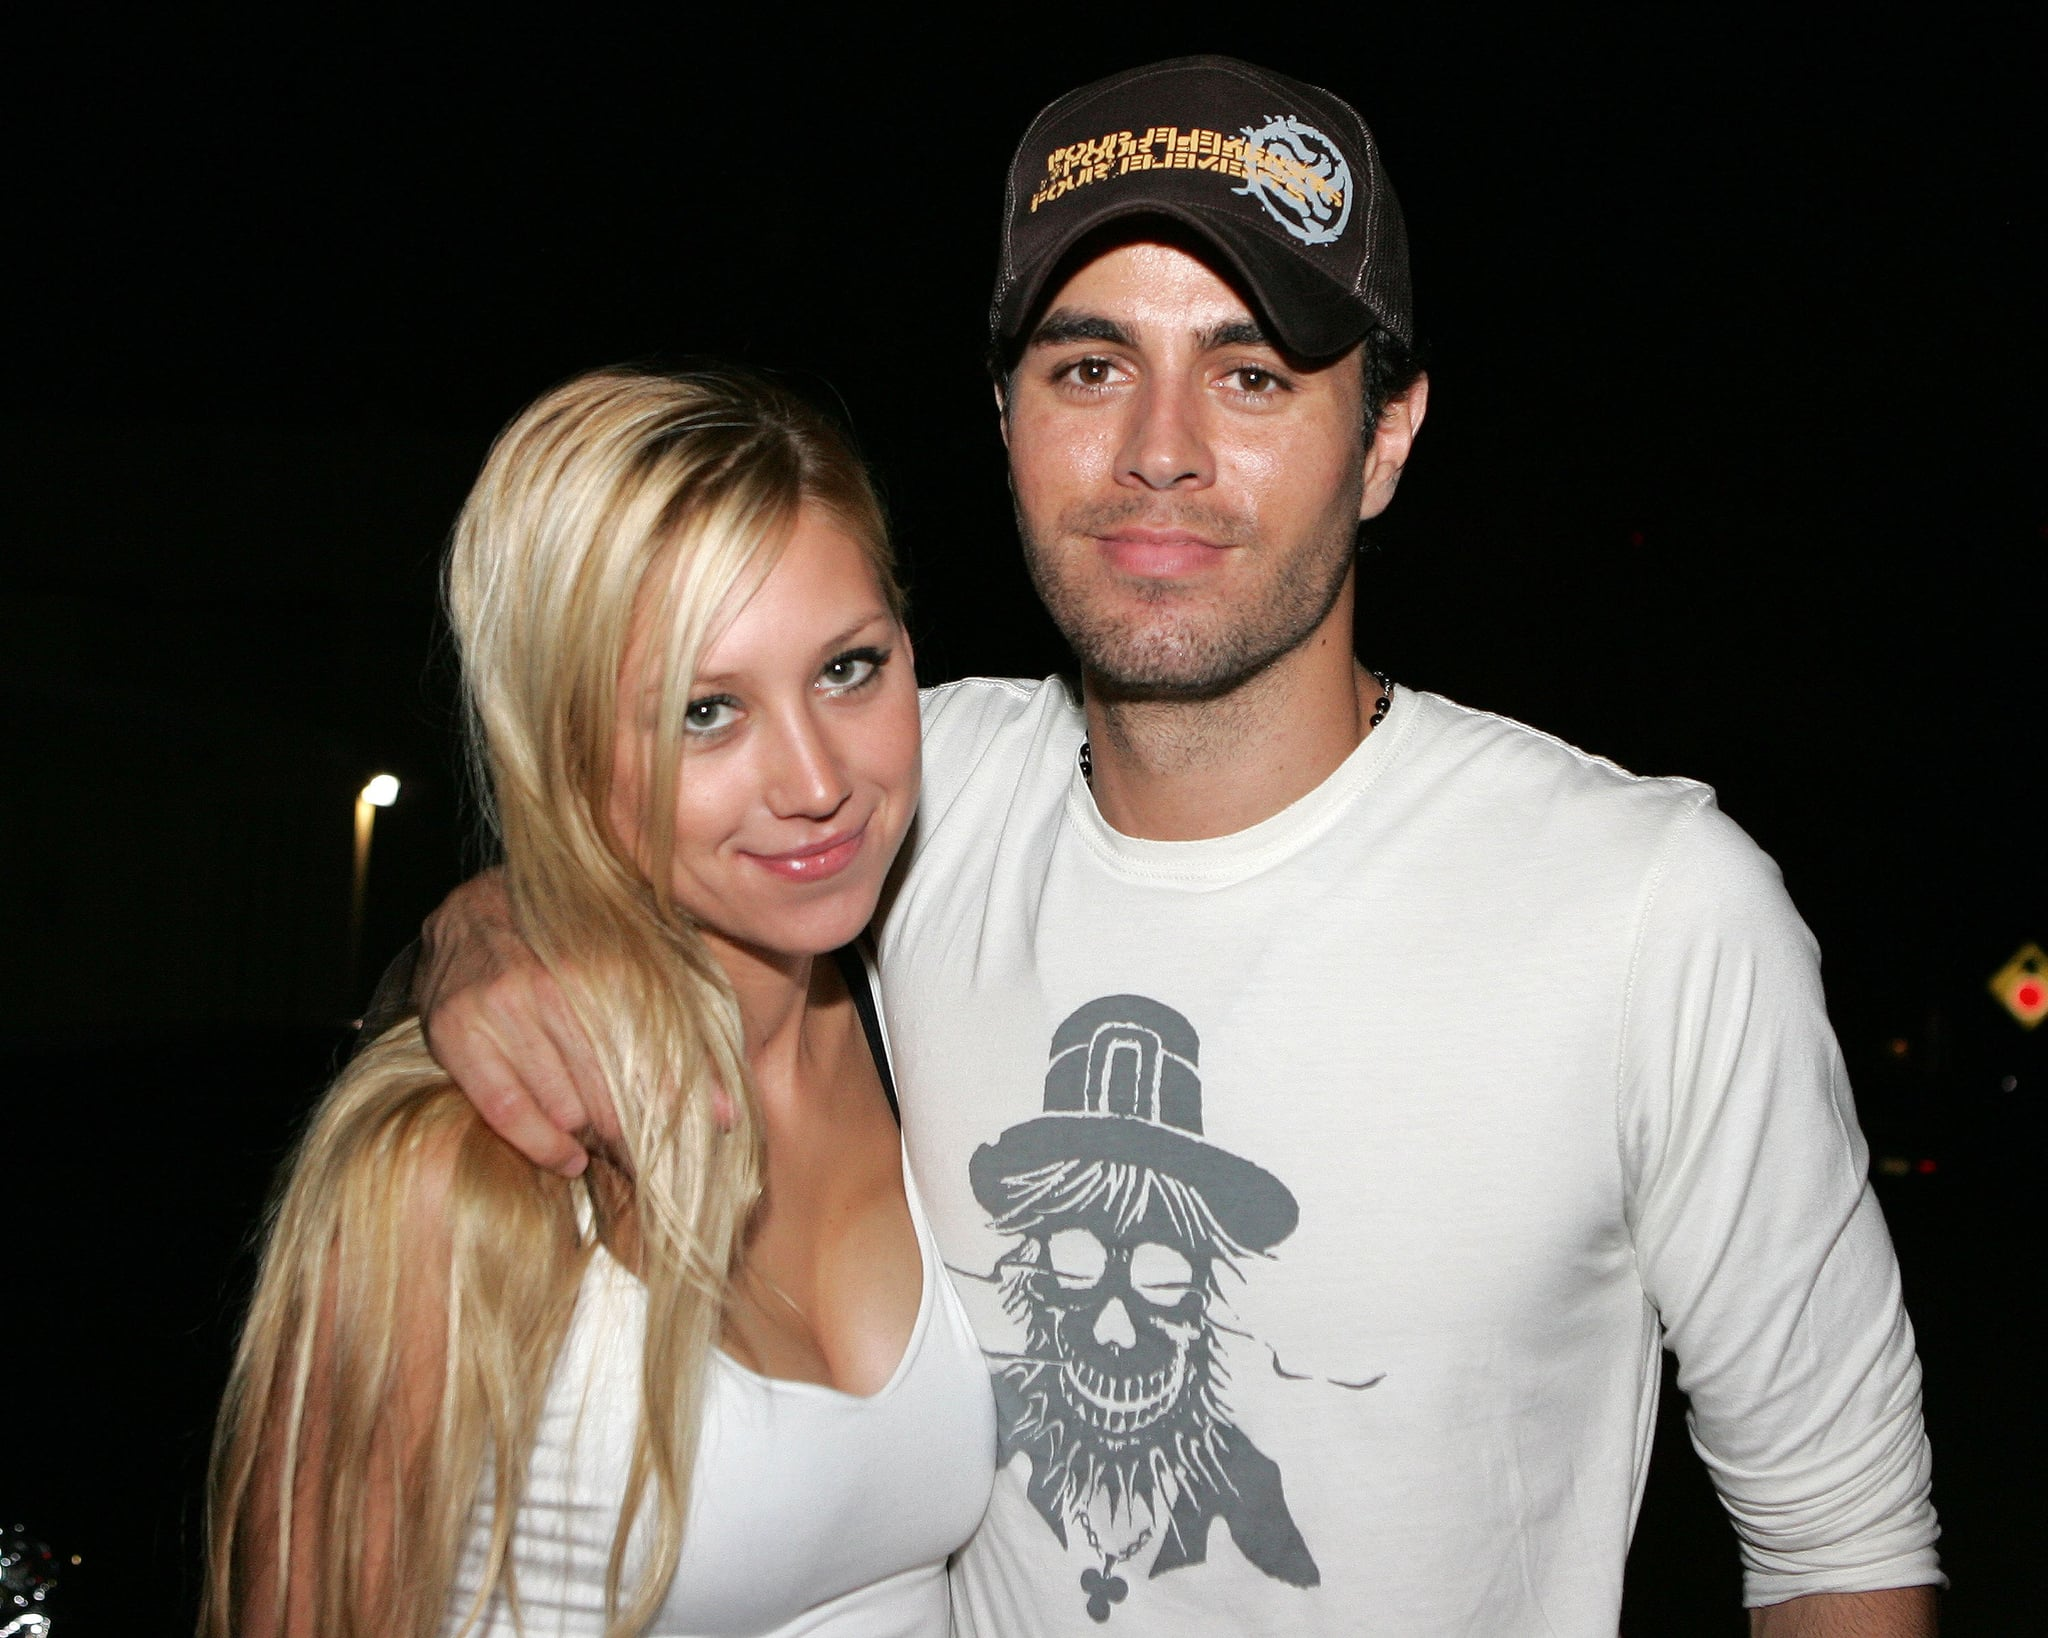 Pop star Enrique Iglesias and former tennis player Anna Kourtnikova welcomed twins over weekend